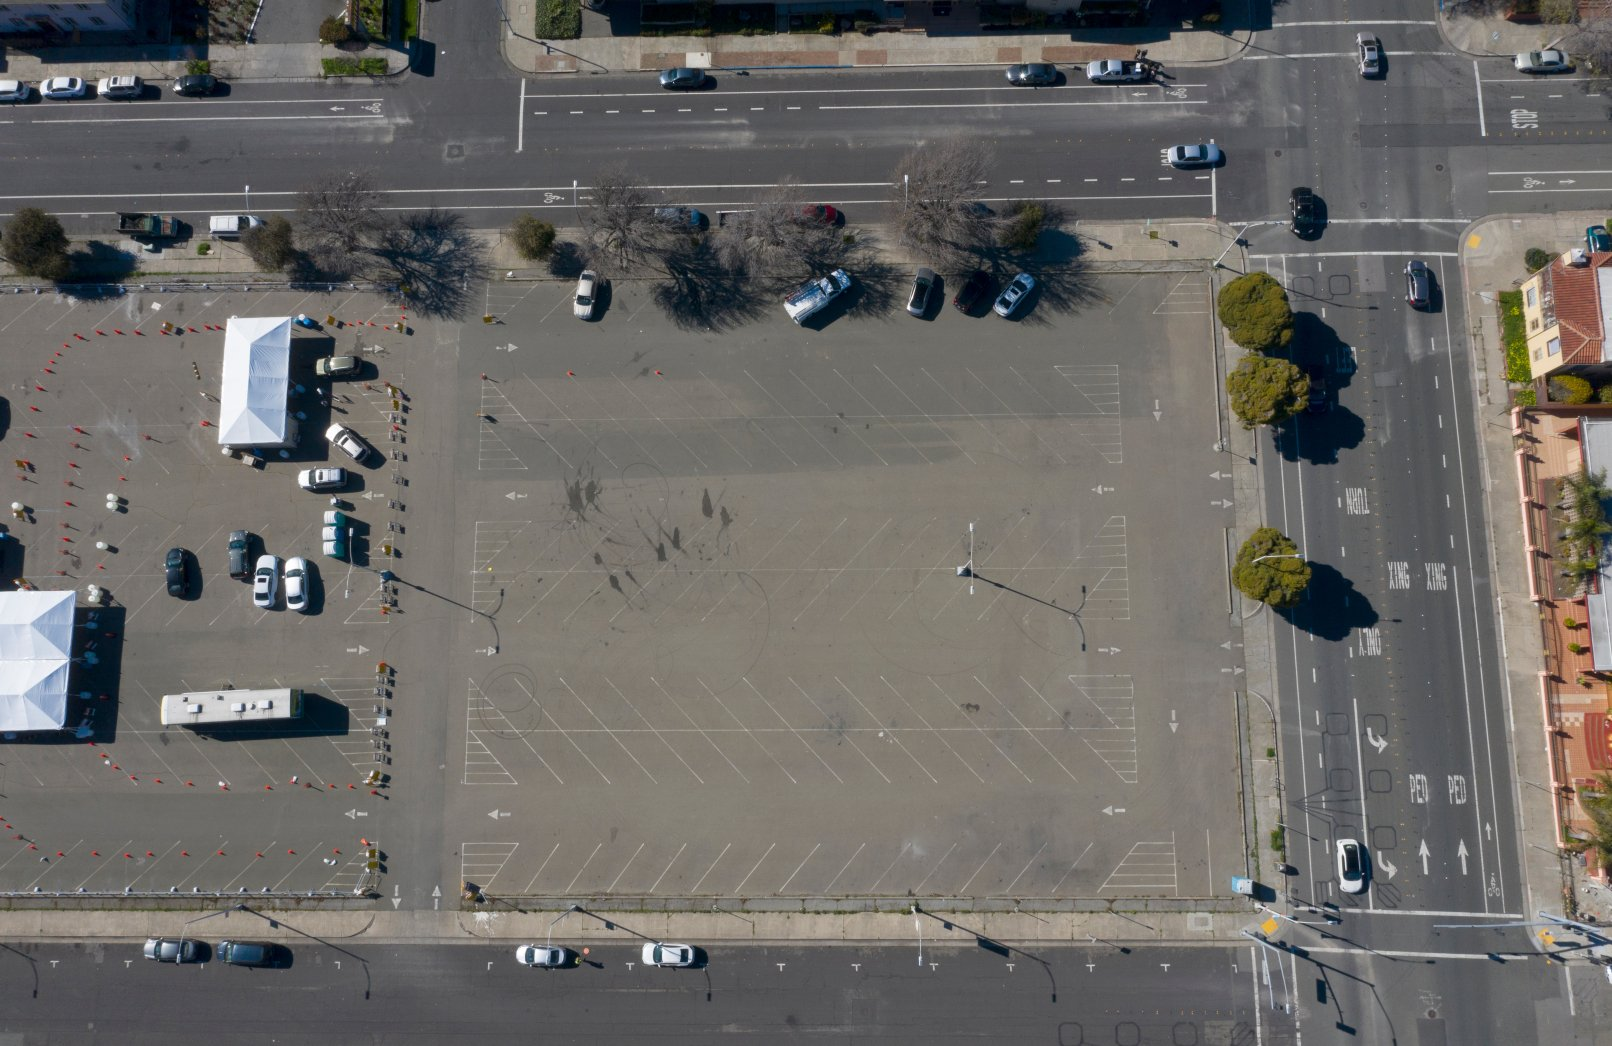 Richmond chooses Civic Plaza parking lot as vehicle parking site for homeless